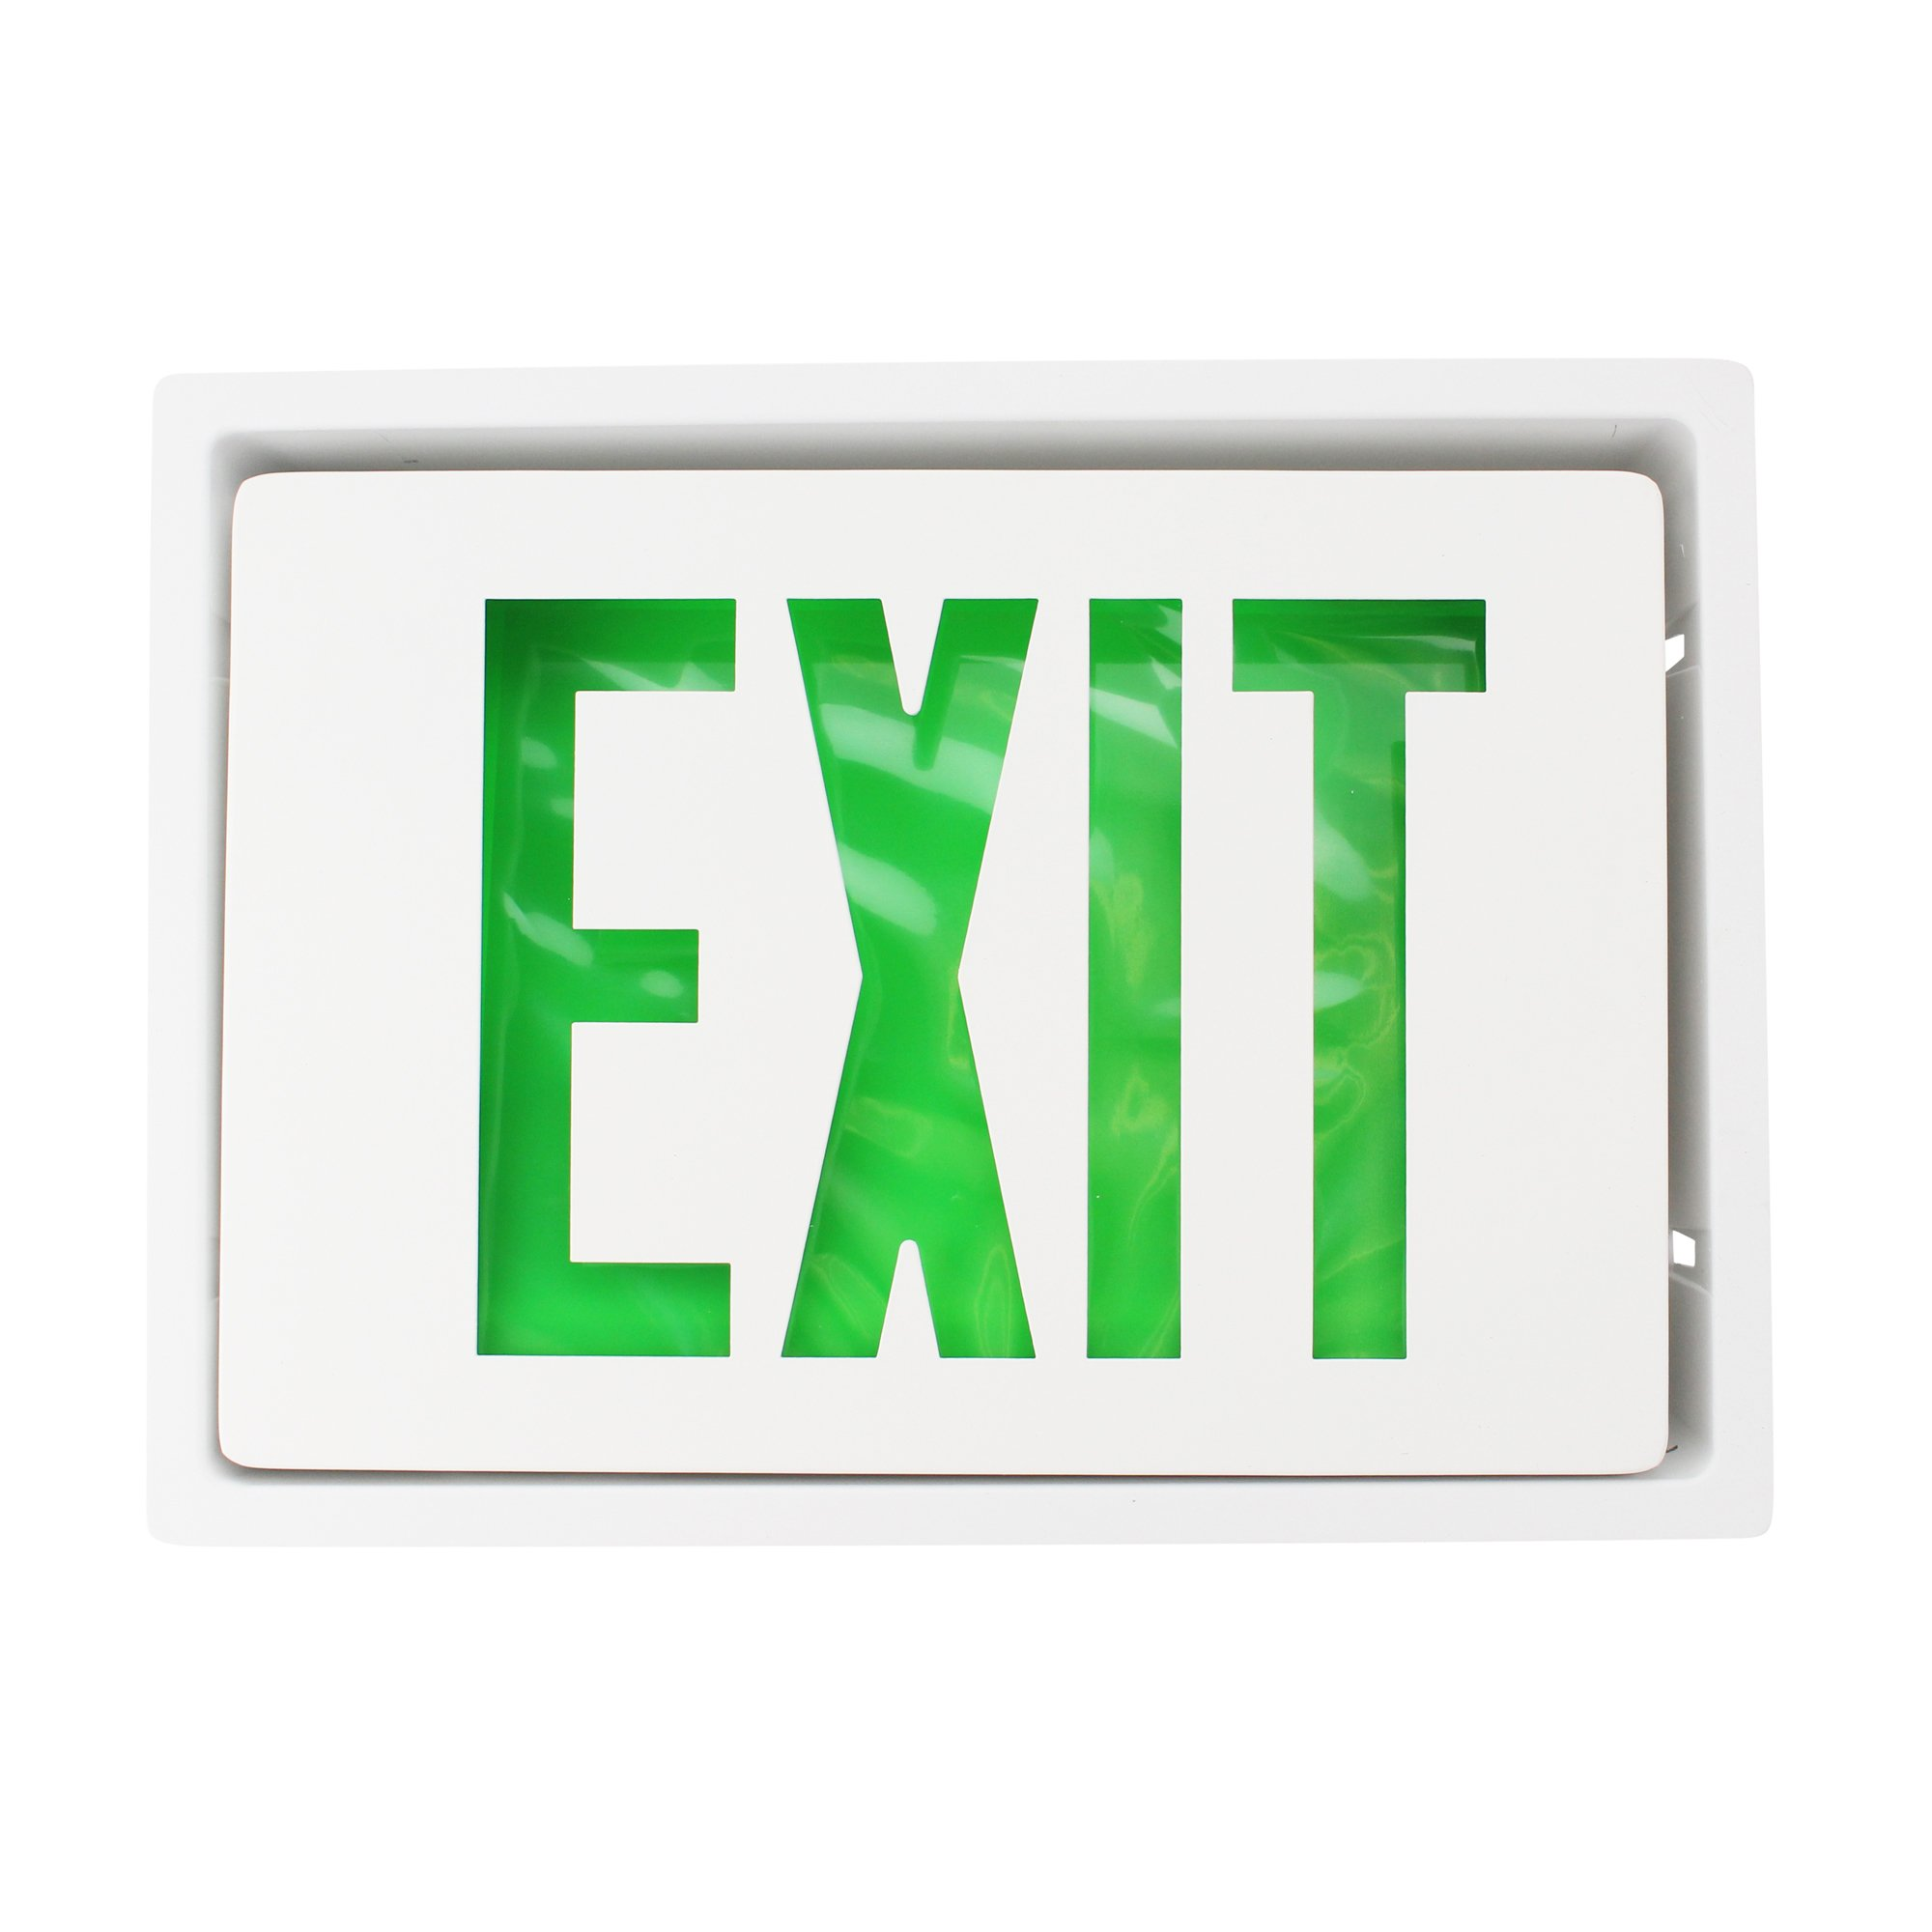 Lithonia Lighting Lre-S-W-I-G-120/277 Die Cast Led Exit Sign, Recessed, White W/Green Letters